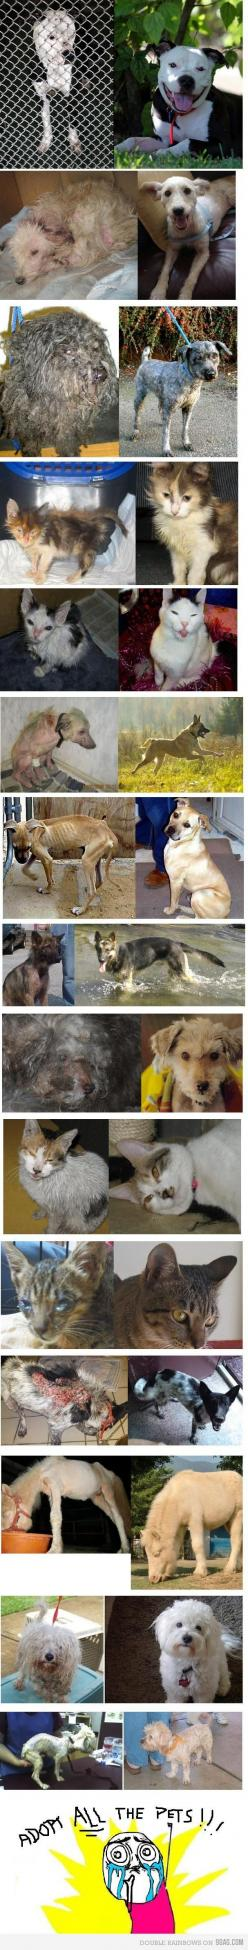 Animals Before and After ~ Great food, fantastic homes and LOVING GUARDIANS make this happen! <3: Rescue Dogs, Animal Rescue, Adoption, Animal Rights, Animal Cruelty, Pets, Animal Abuse, Happy Endings